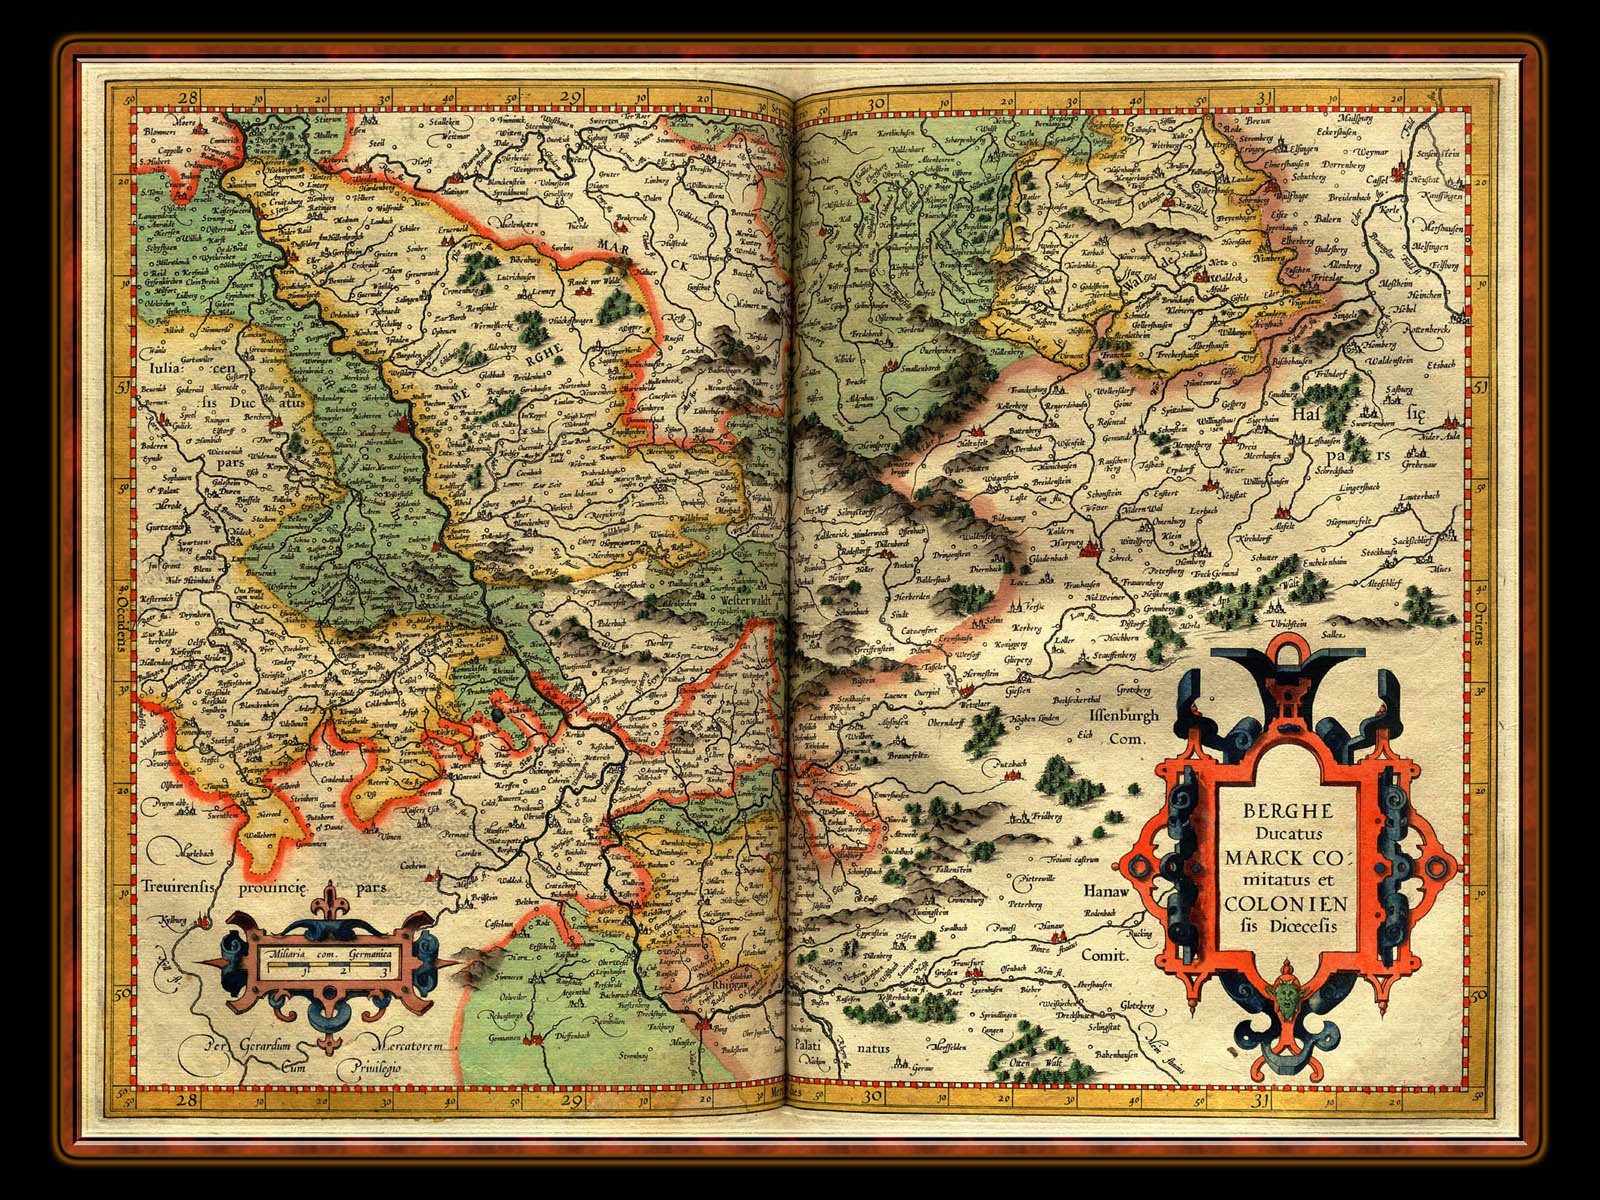 """Gerhard Mercator 1595 World Atlas - Cosmographicae"" - Wallpaper No. 43 of 106. Right click for saving options."